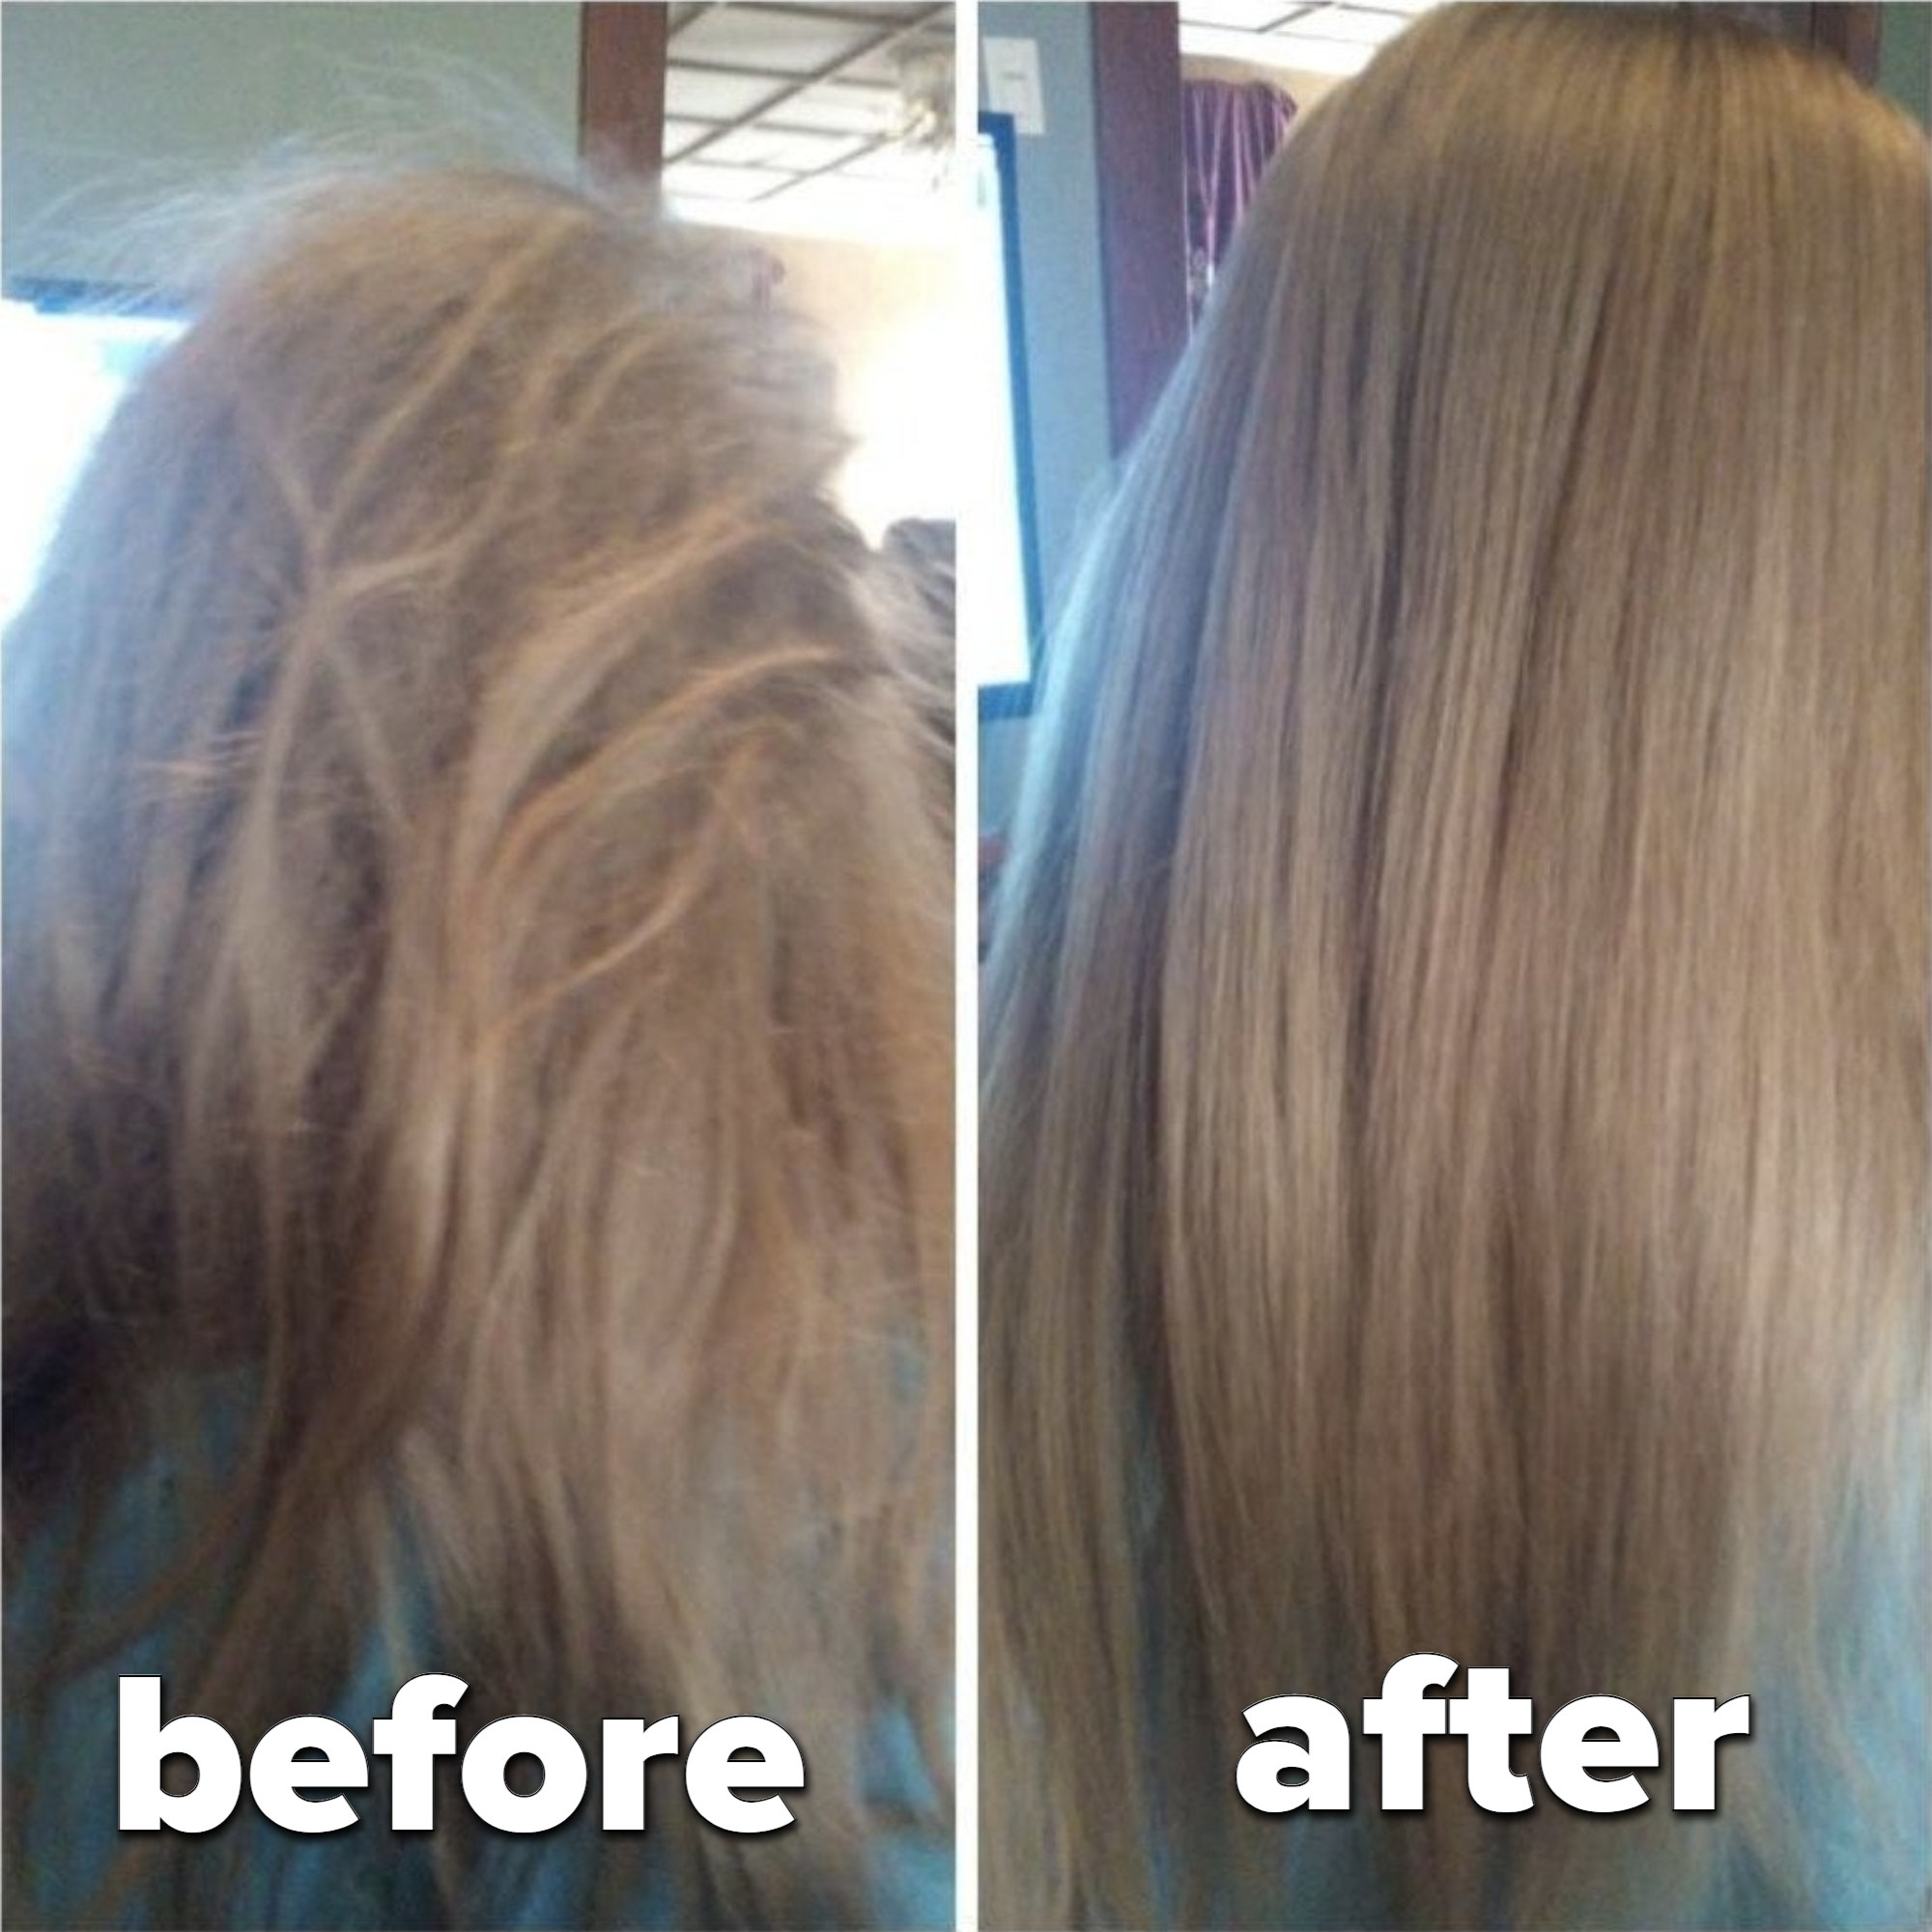 A before and after of brushed hair